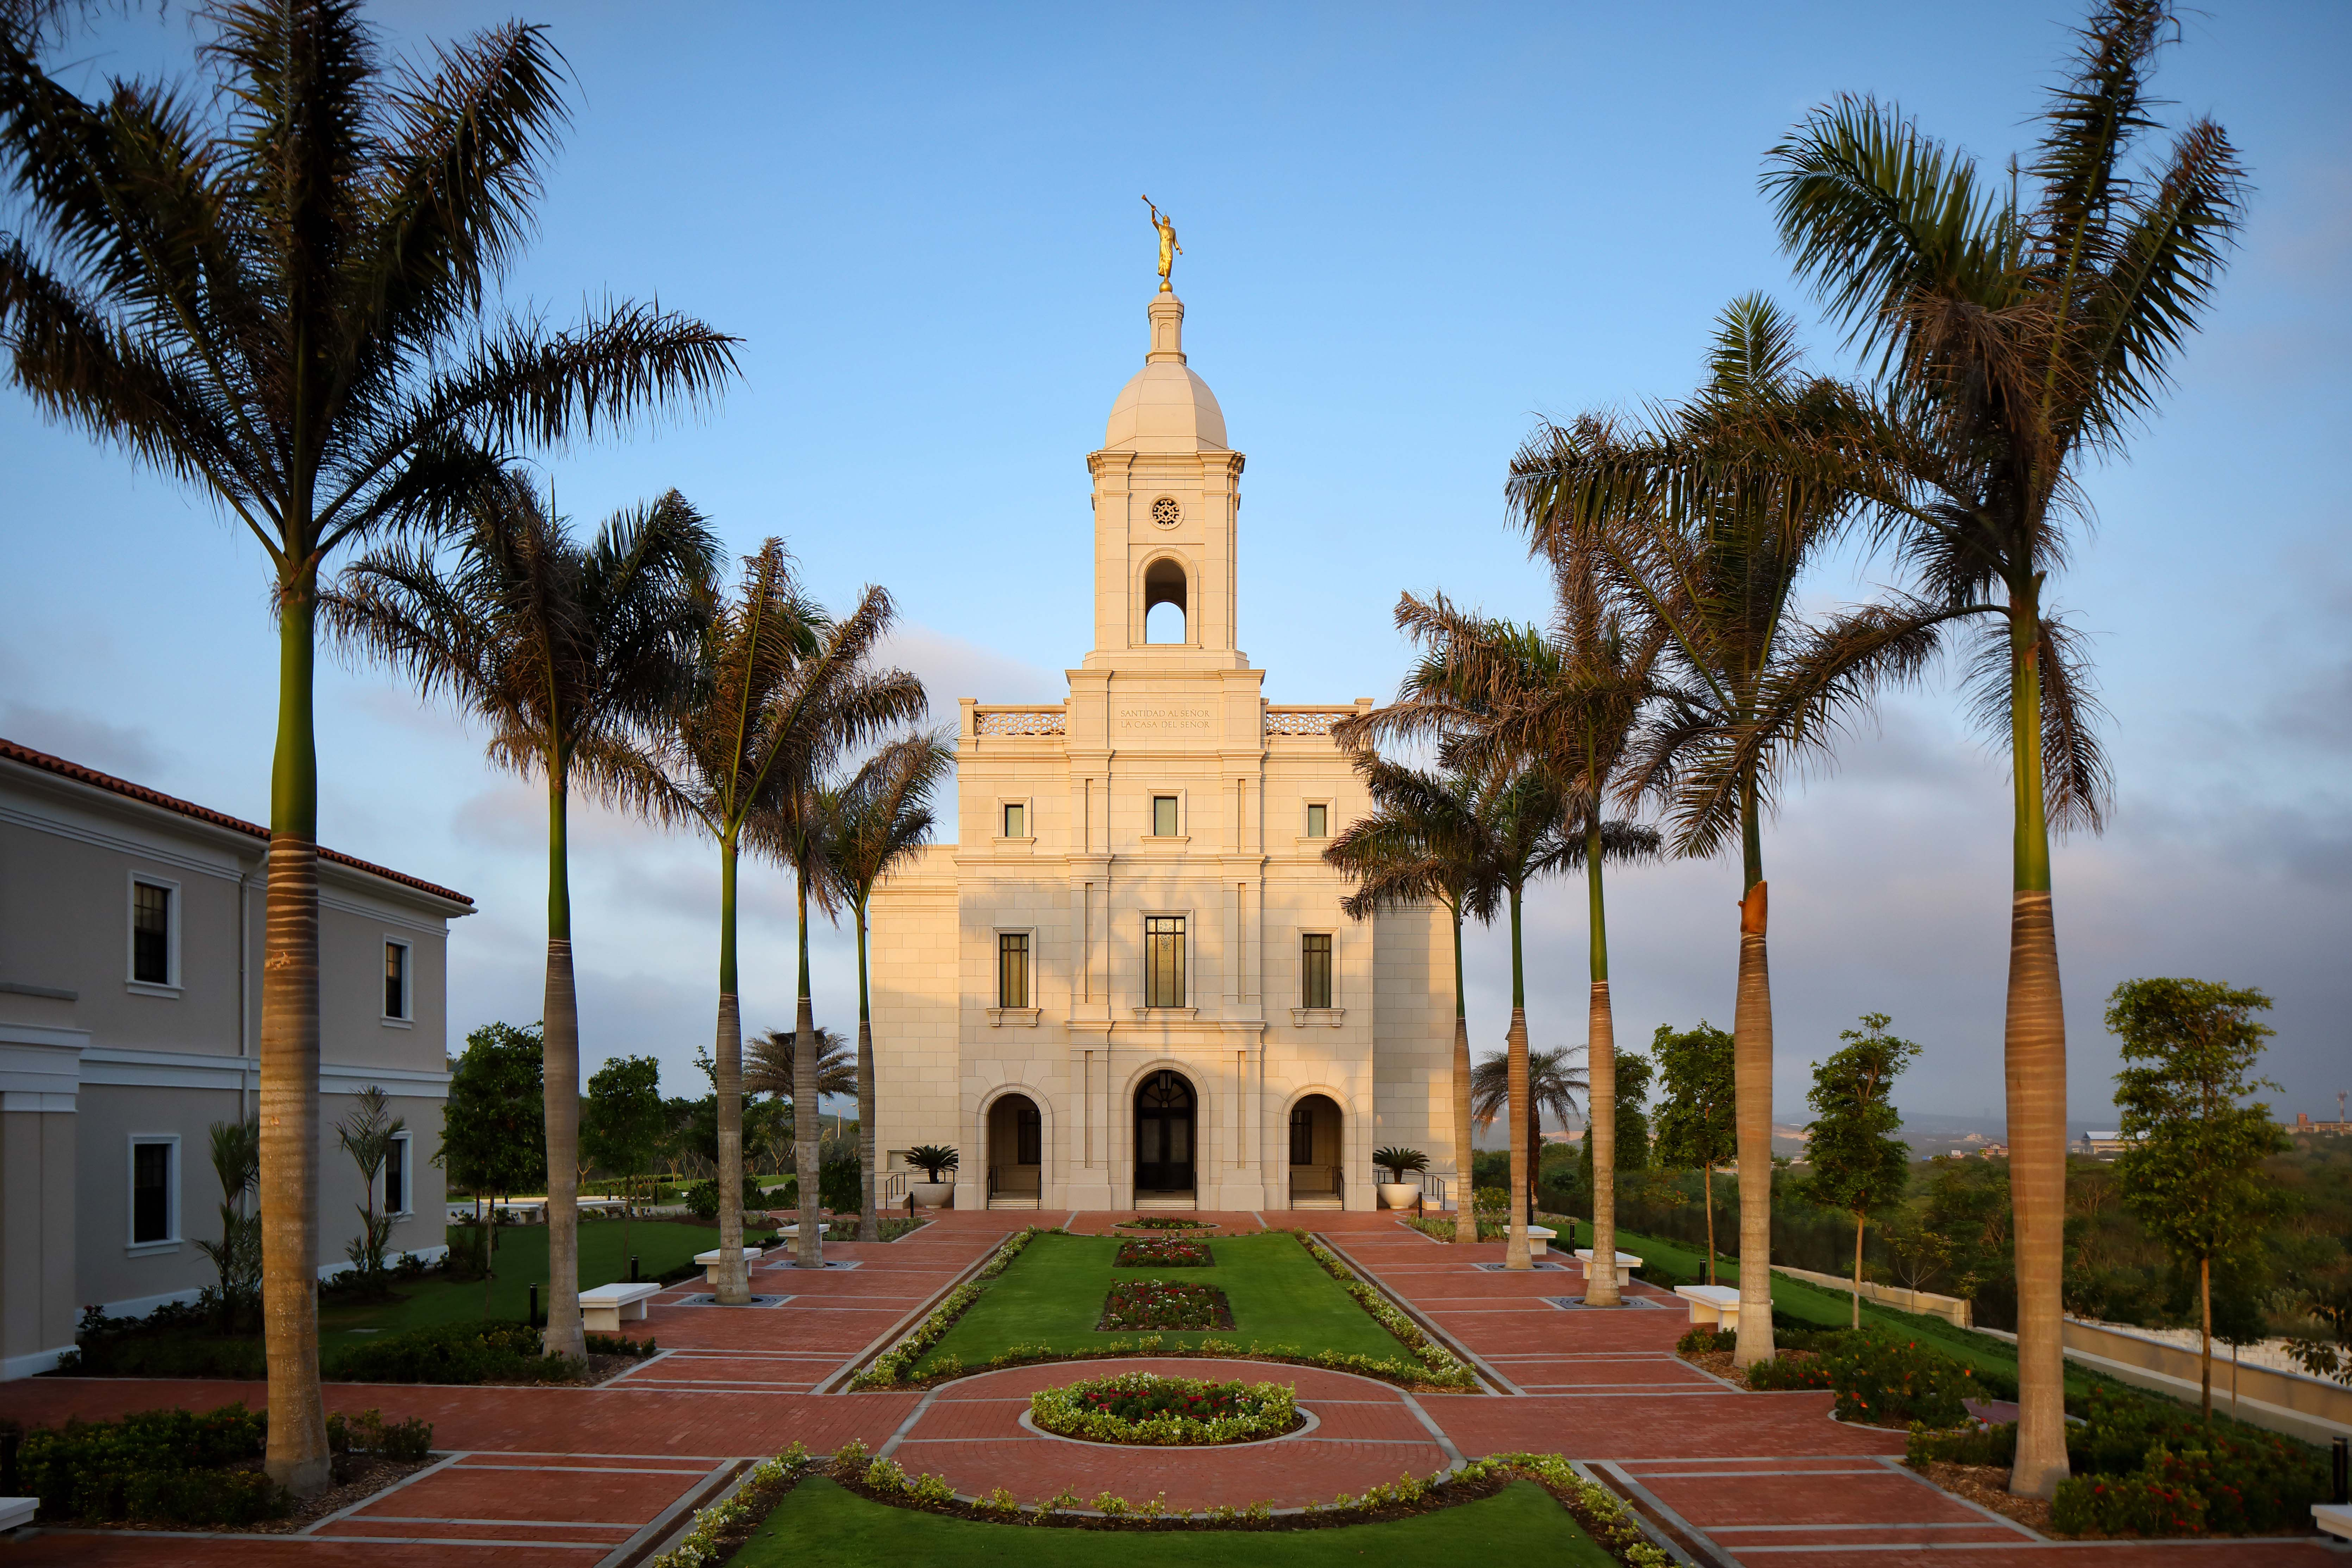 Read The Dedicatory Prayer Of The Barranquilla Colombia